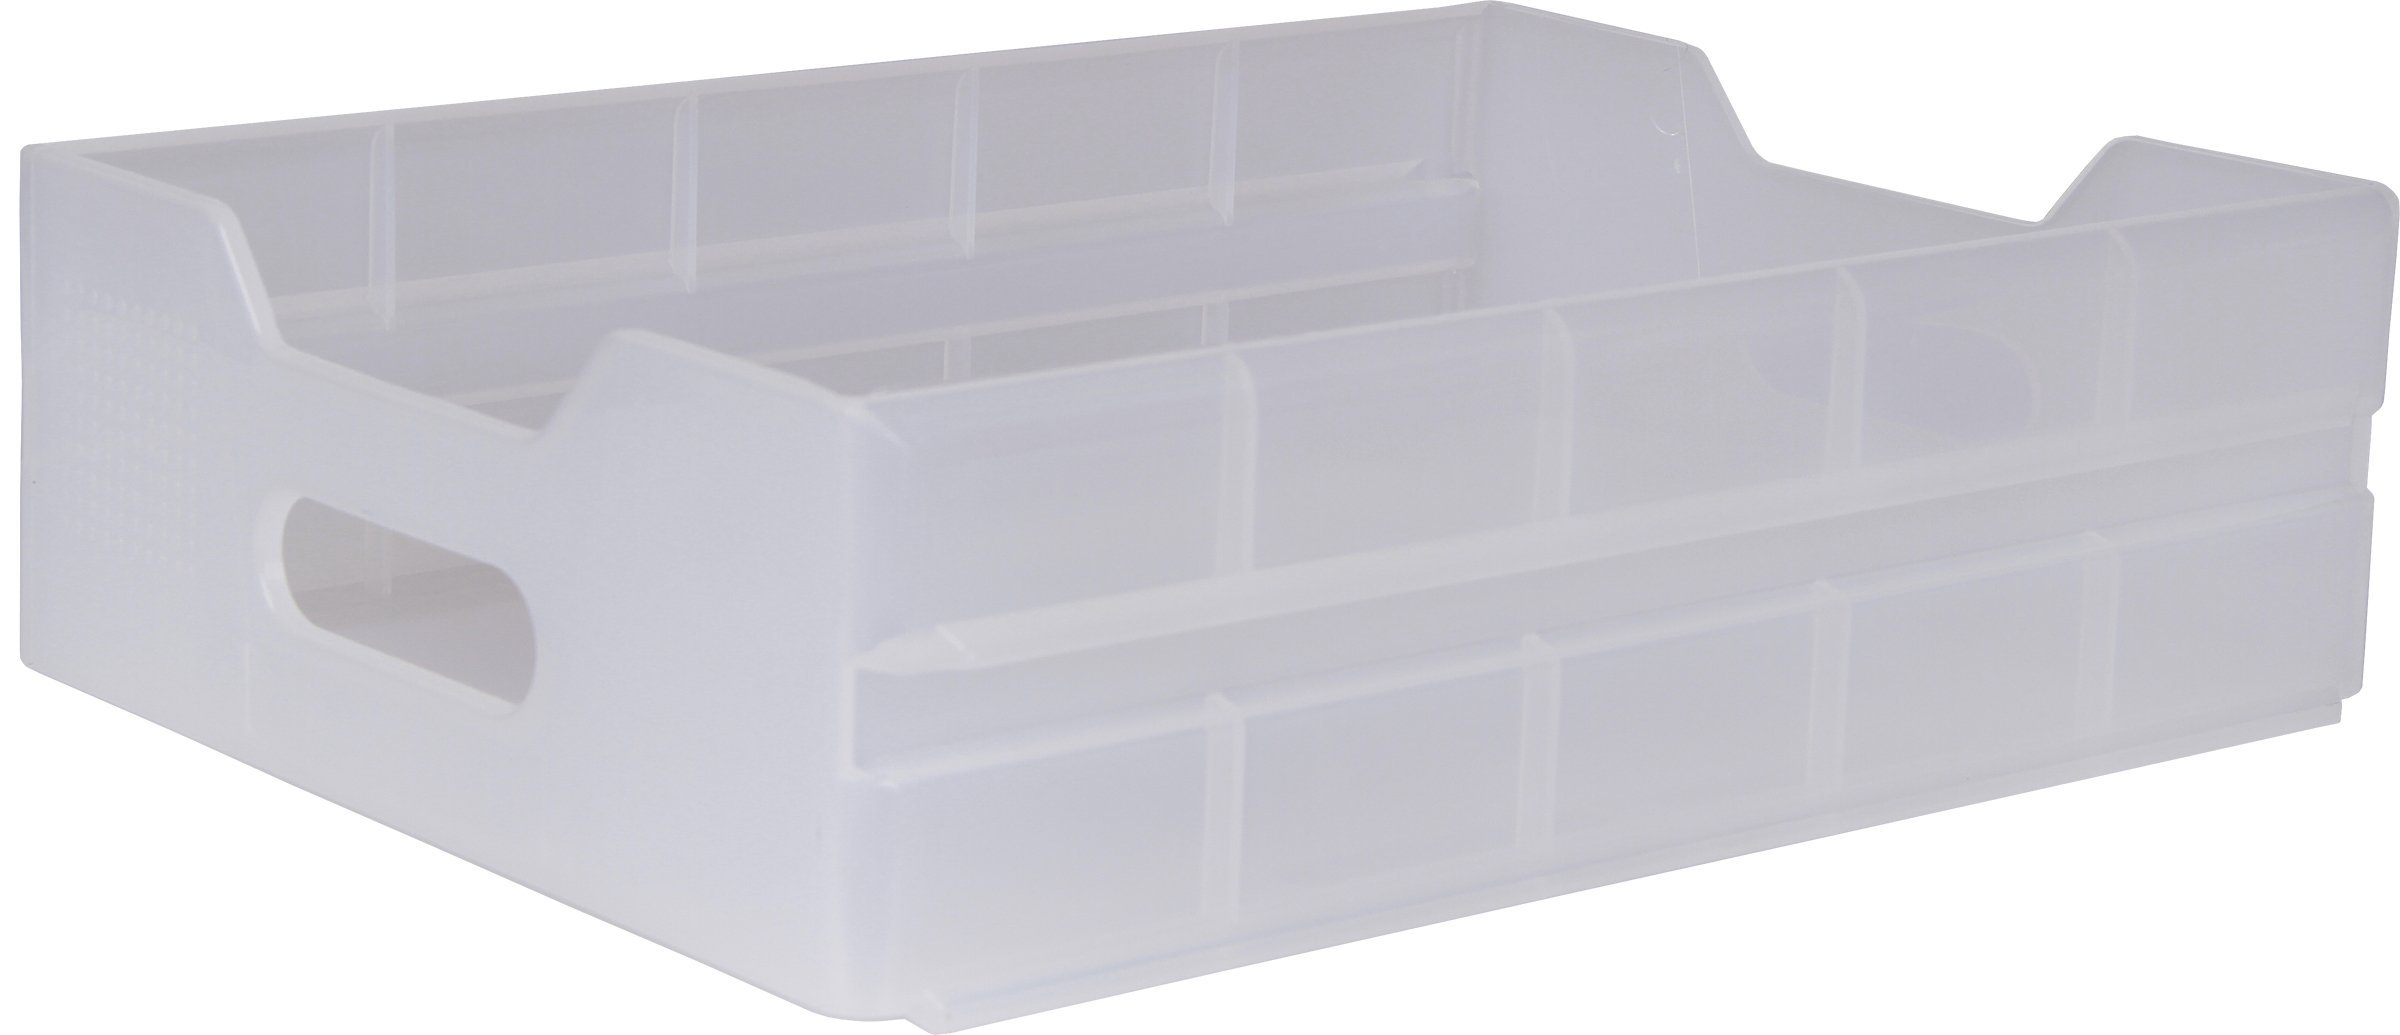 SkyCart Airline Trolley Poly Drawer, Batch of 4